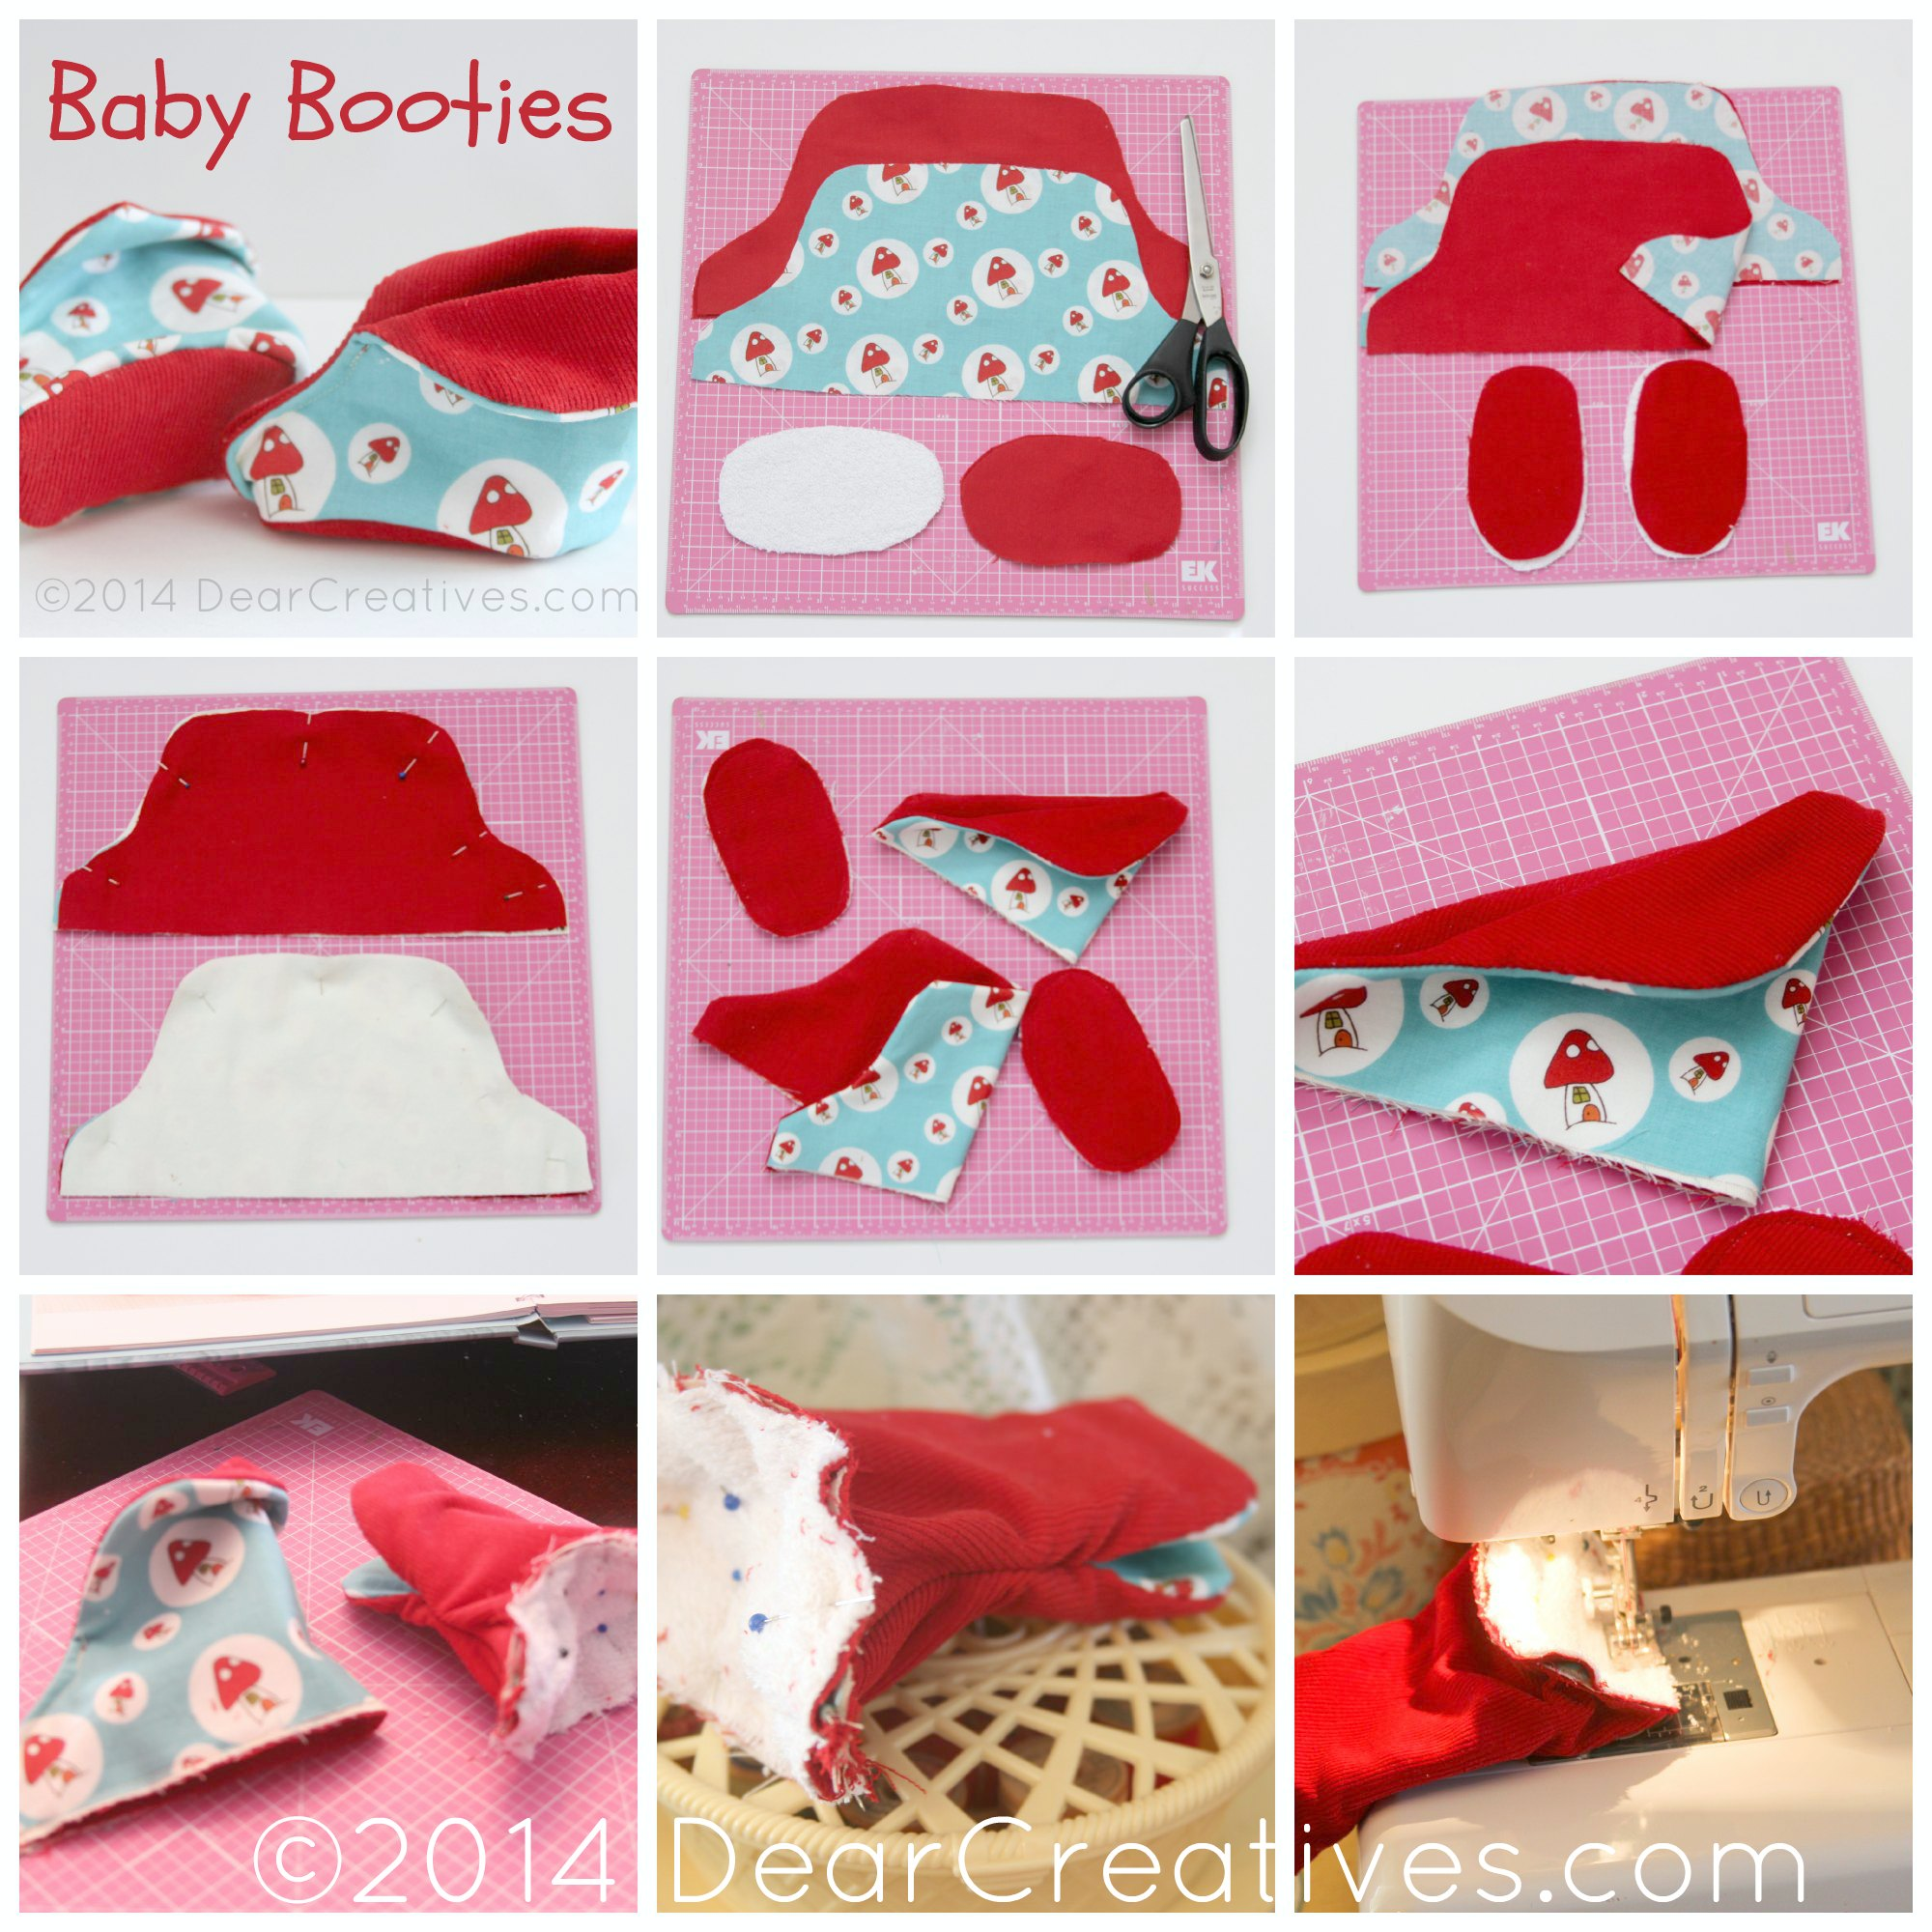 Quick and easy sewing for baby baby booties dear creatives step by step how to sew baby bootiessewingbabysewing patterndearcreatives jeuxipadfo Choice Image